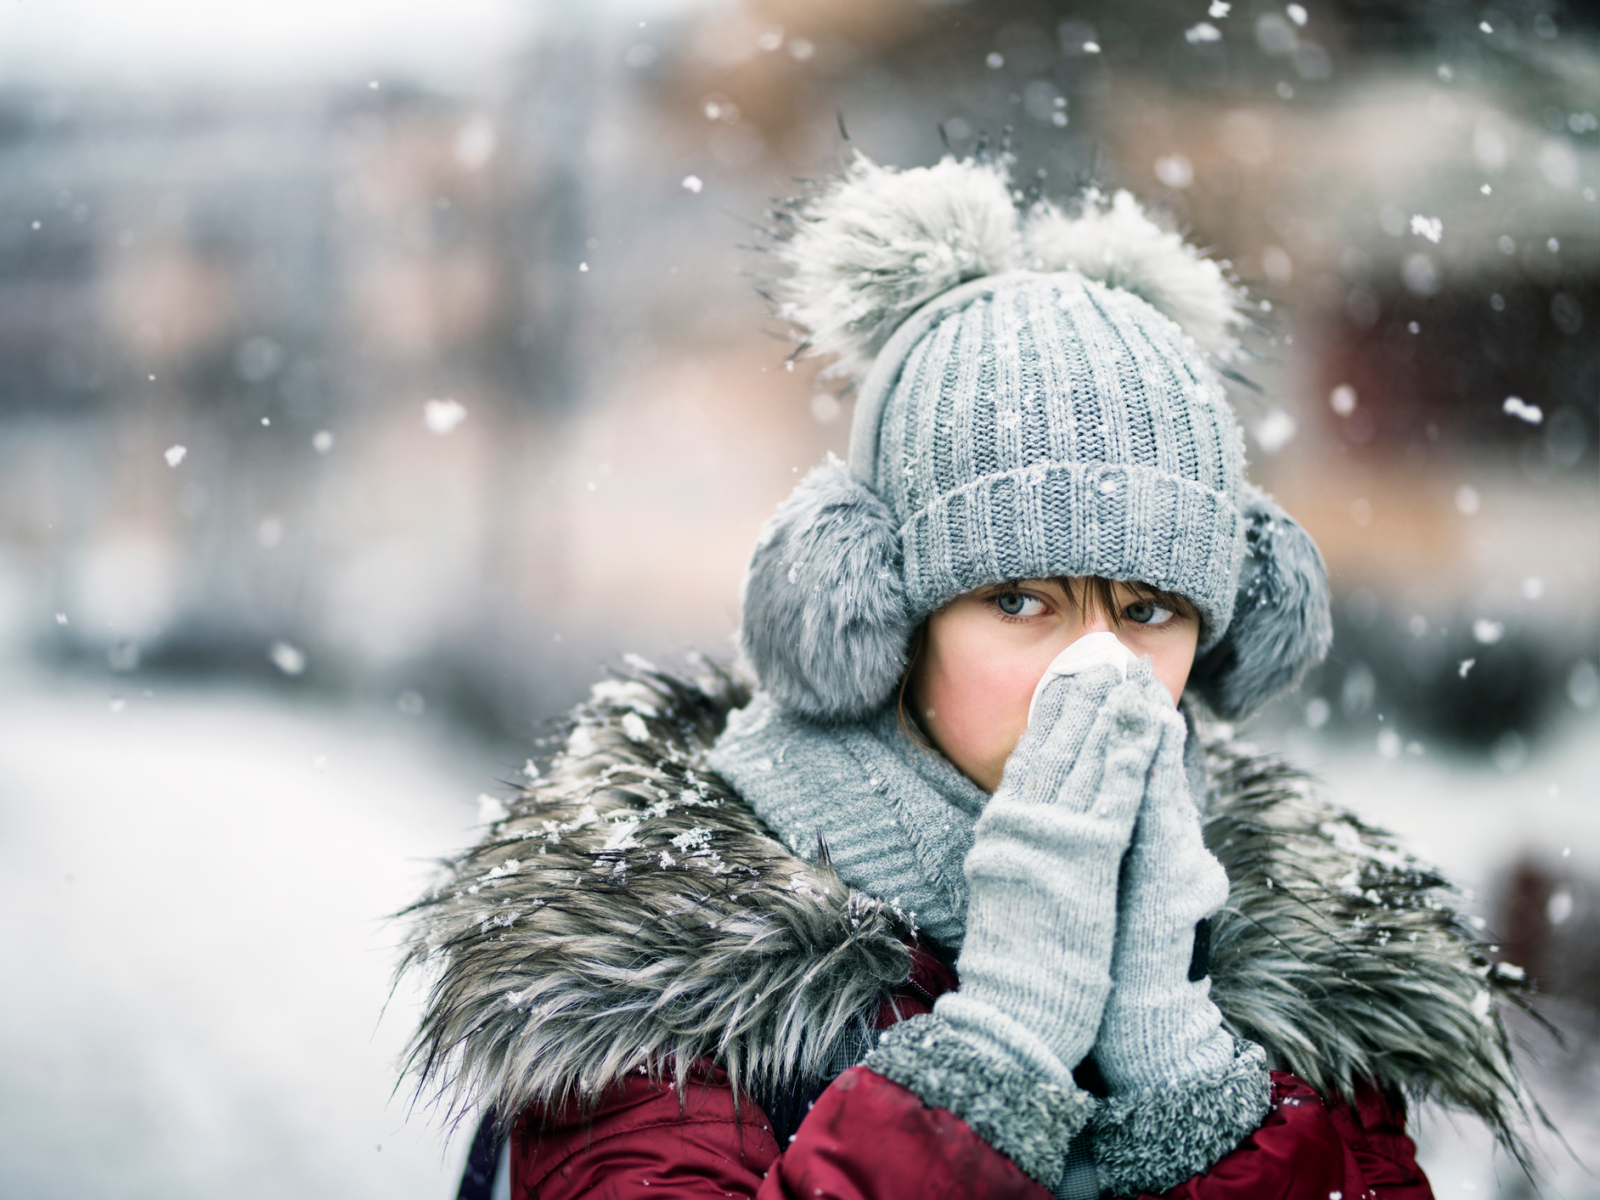 COVID-19 News: Swiss Study Shows That For Coming Winter SARS-CoV-2 Will Be Competing Aggressively With Other Viruses For Susceptible Hosts - Thailand Medical News